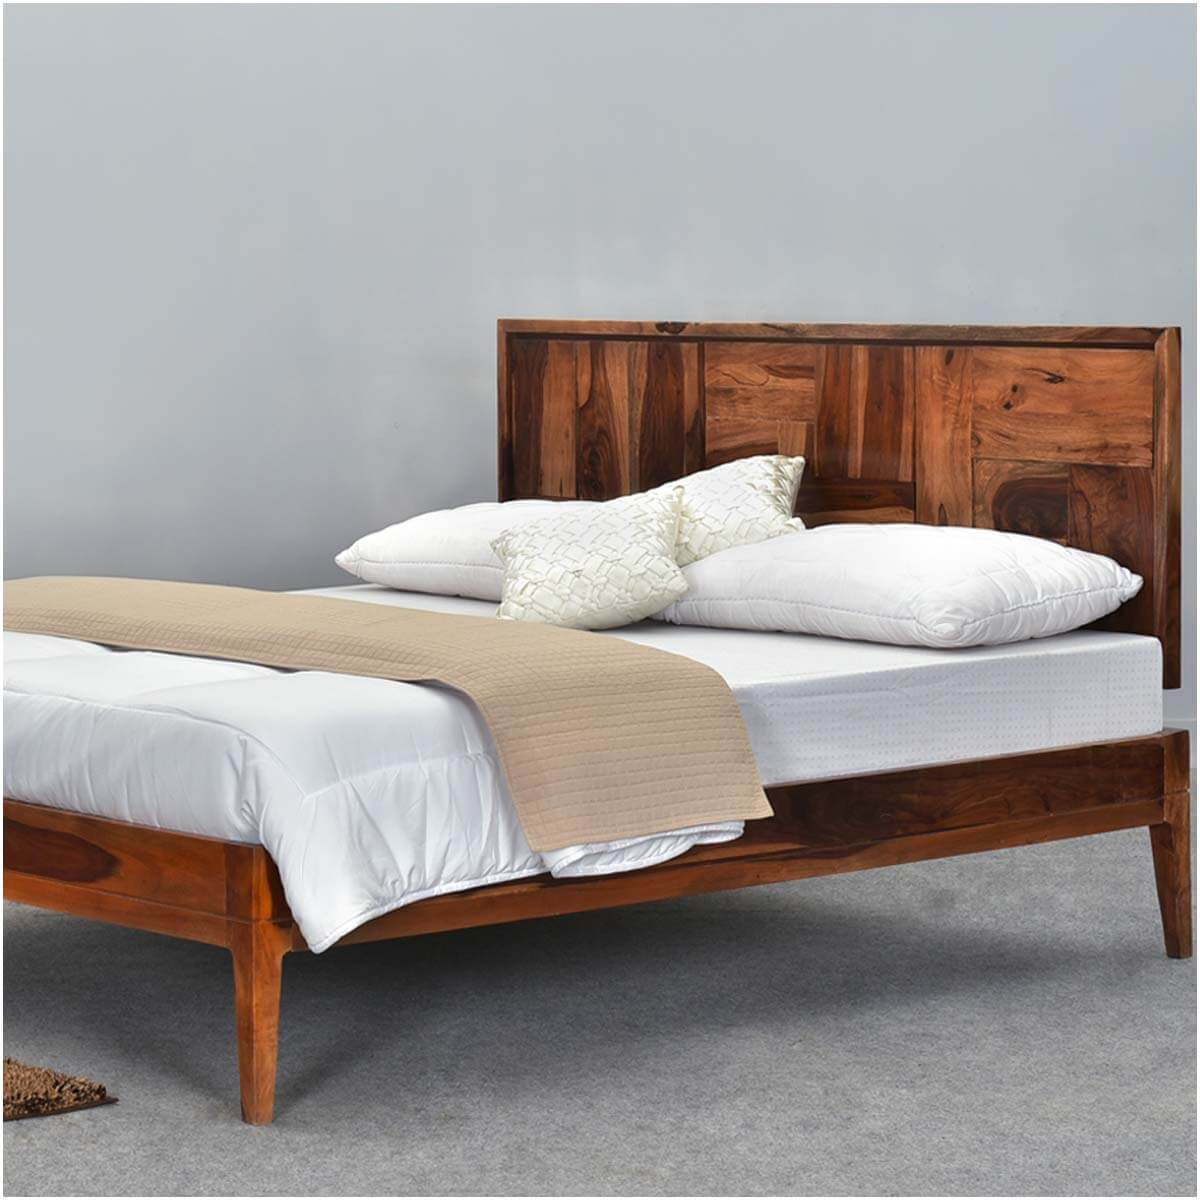 Sunrise Farmhouse Pioneer Solid Wood Platform Bed Frame w Headboard